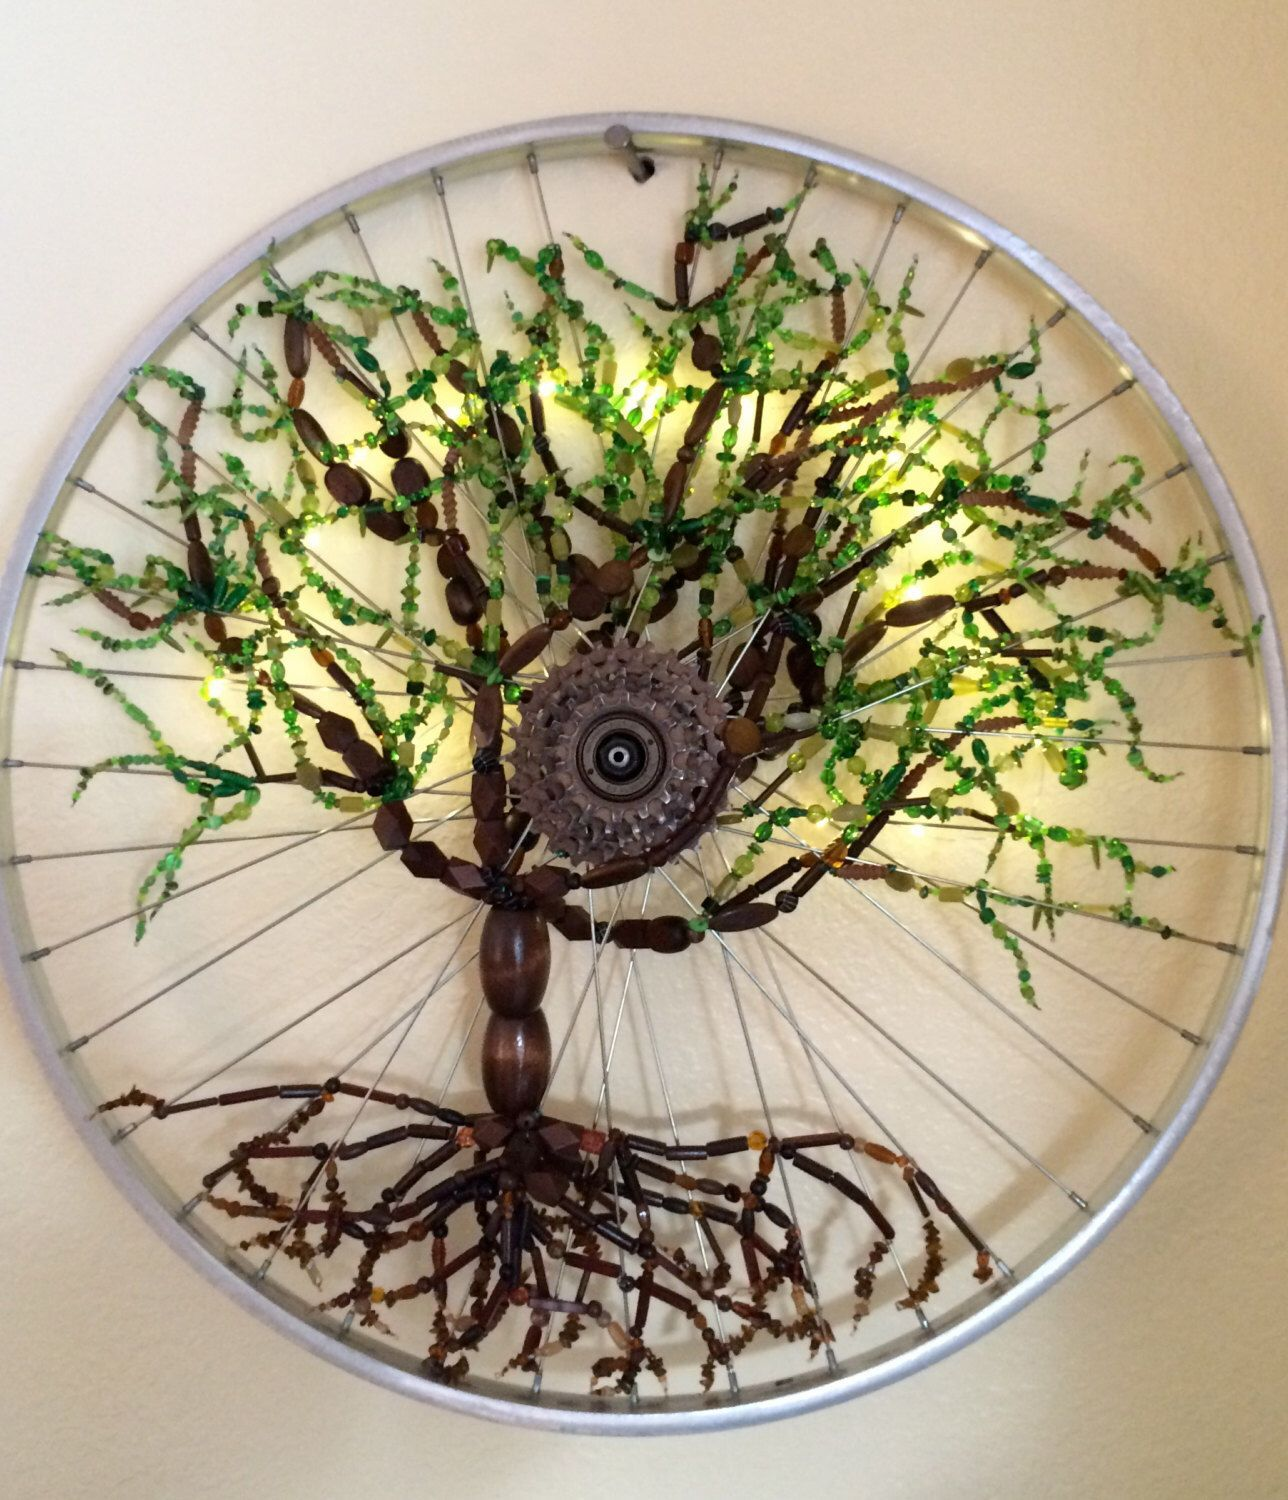 Moondapple Sapling Bicycle Art Recycled Bike Art, Spring Tree, Roots by katheryn...#art #bicycle #bike #katheryn #moondapple #recycled #roots #sapling #spring #tree